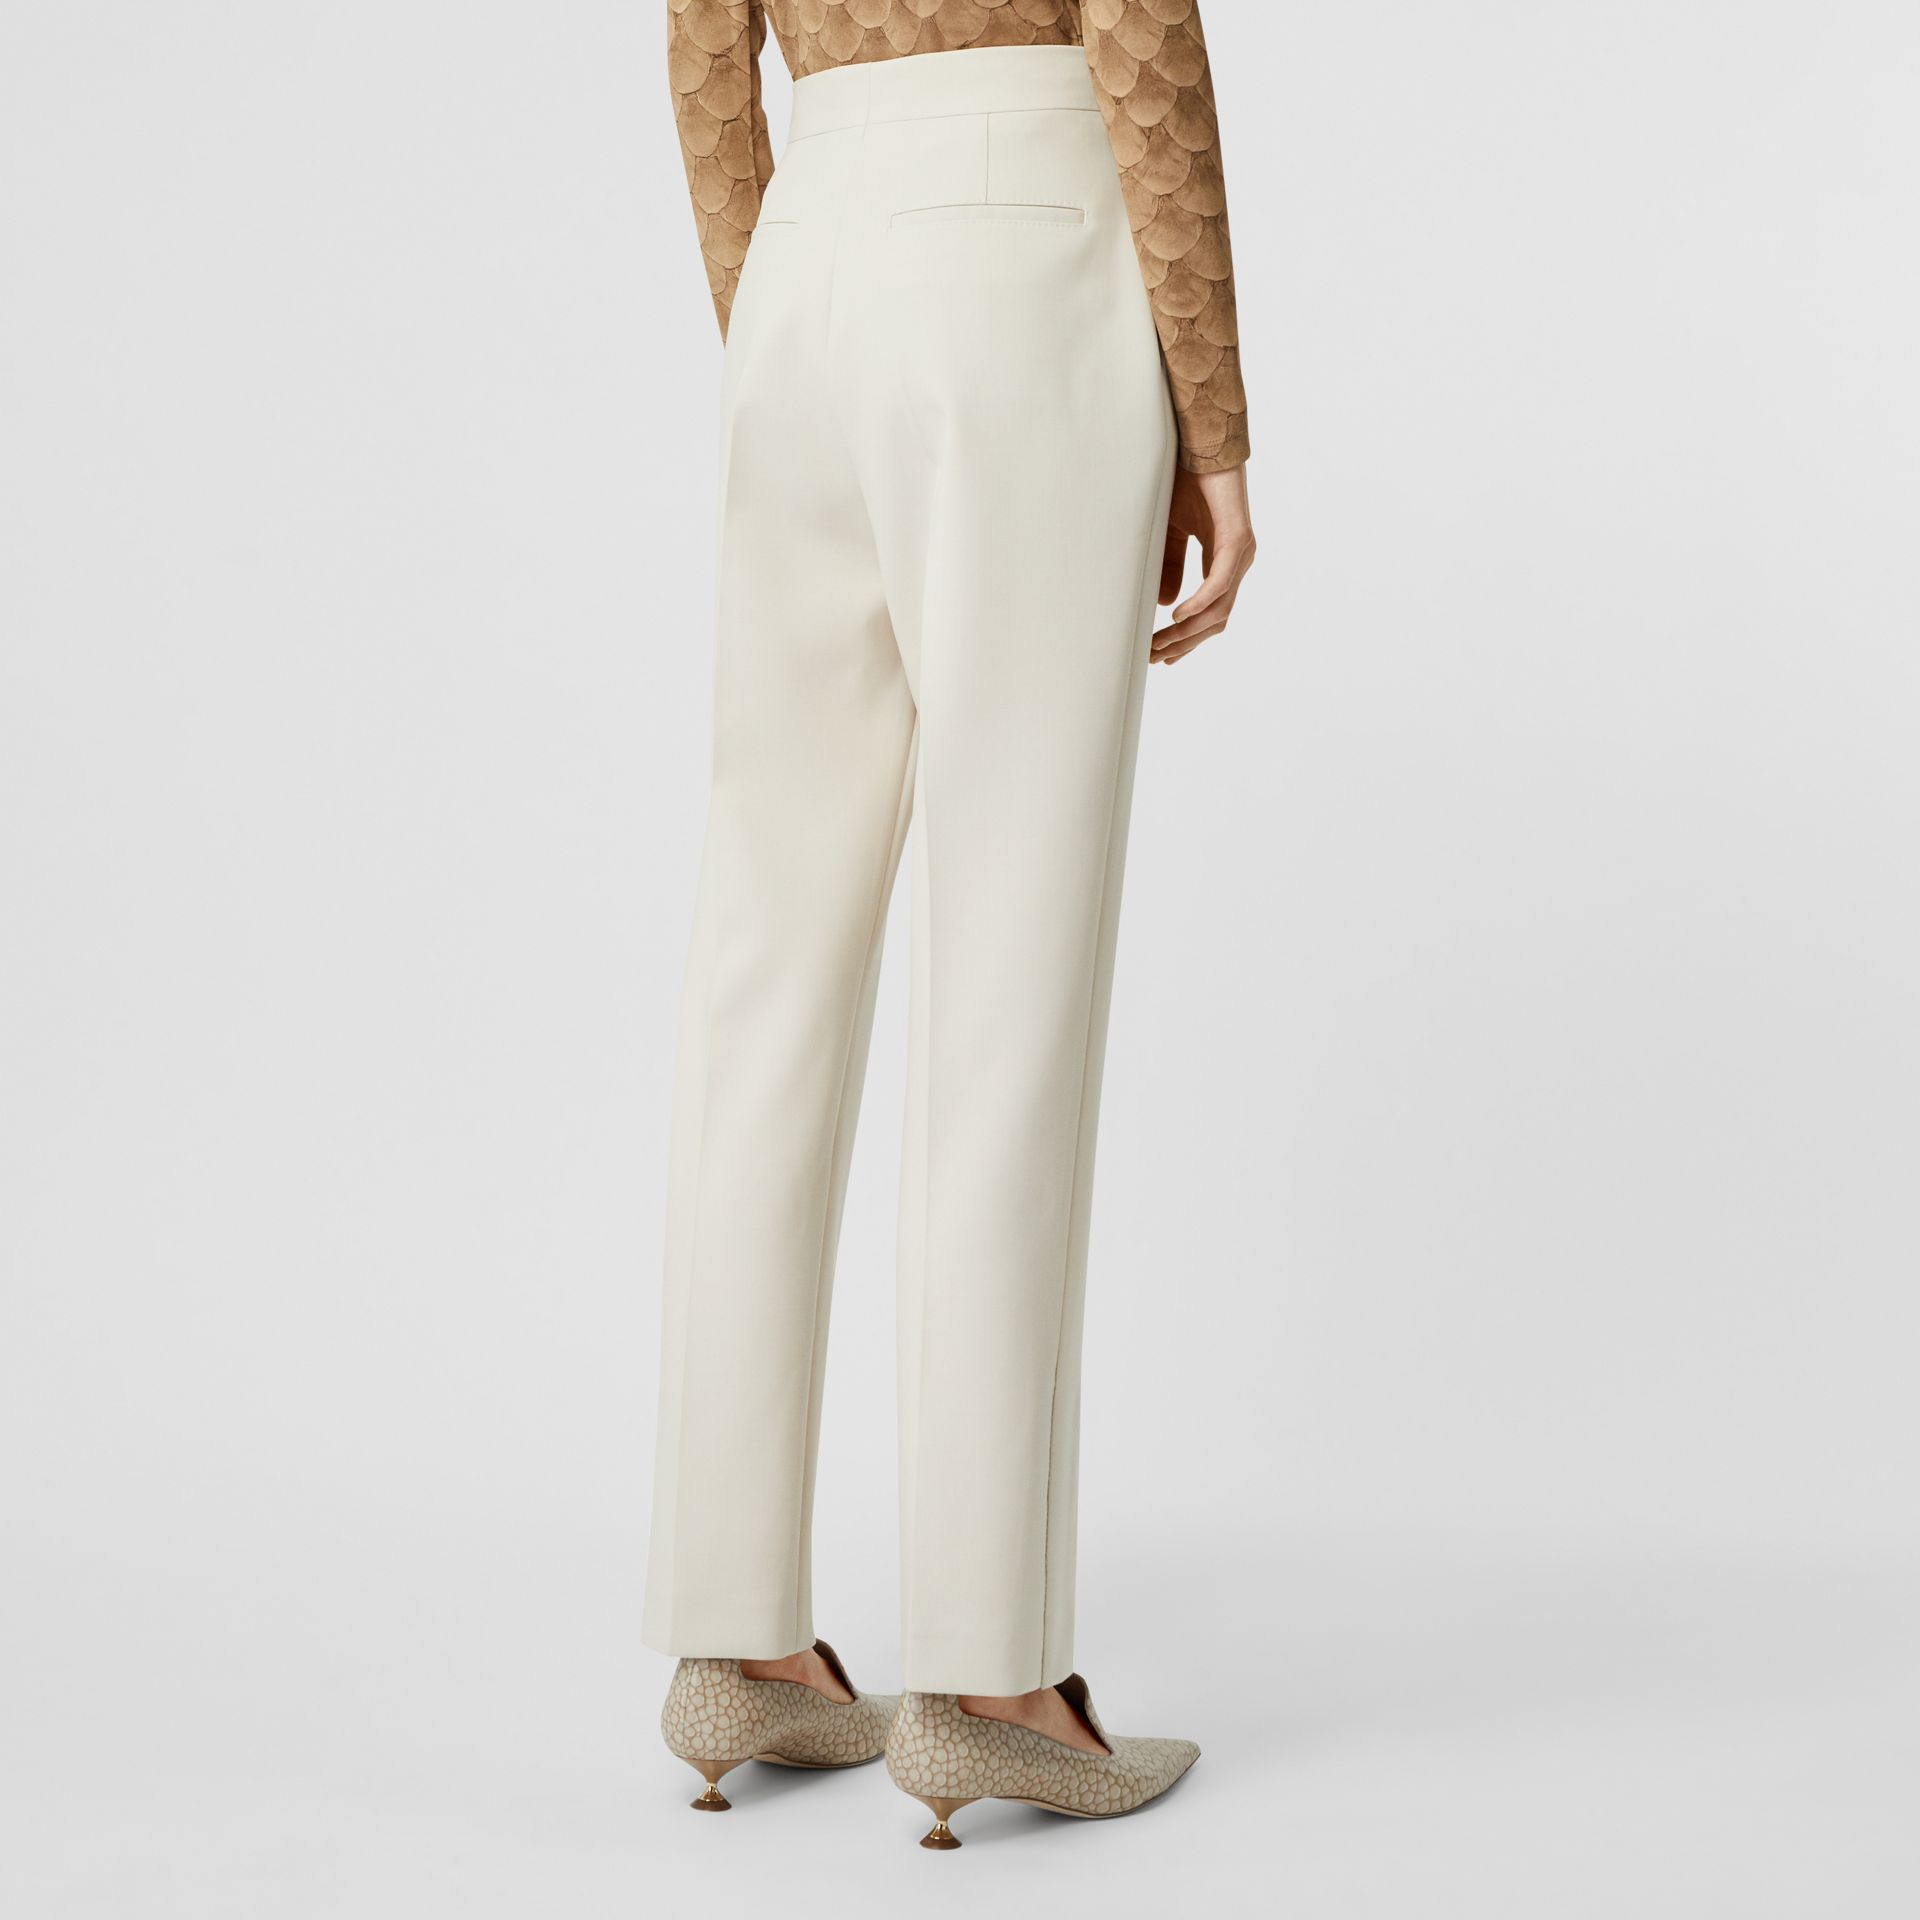 Pantalon tailleur droit en laine stretch (Ocre Pâle) - Femme | Burberry - photo de la galerie 2